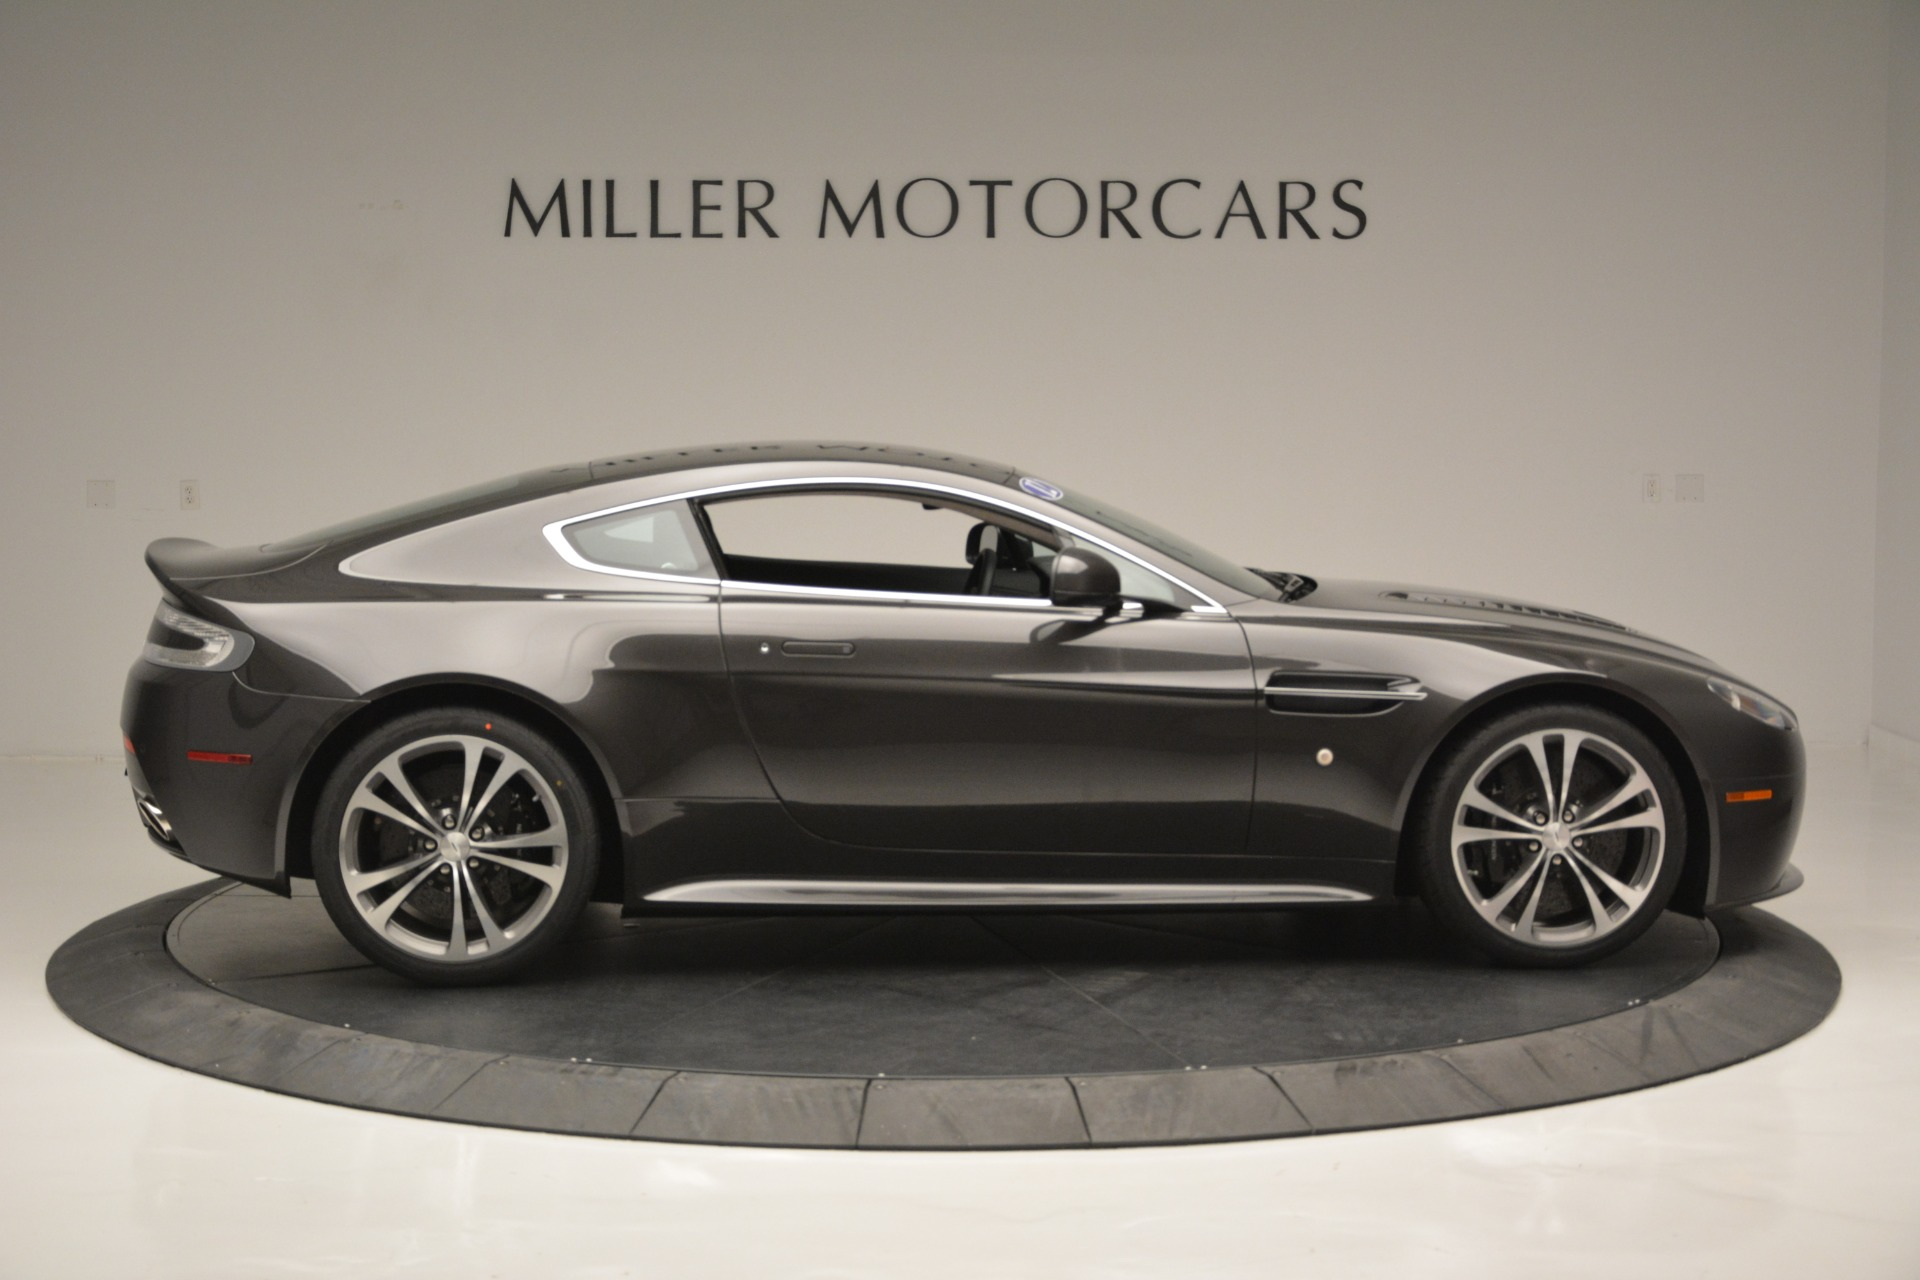 Used 2012 Aston Martin V12 Vantage Coupe For Sale 126900 In Greenwich, CT